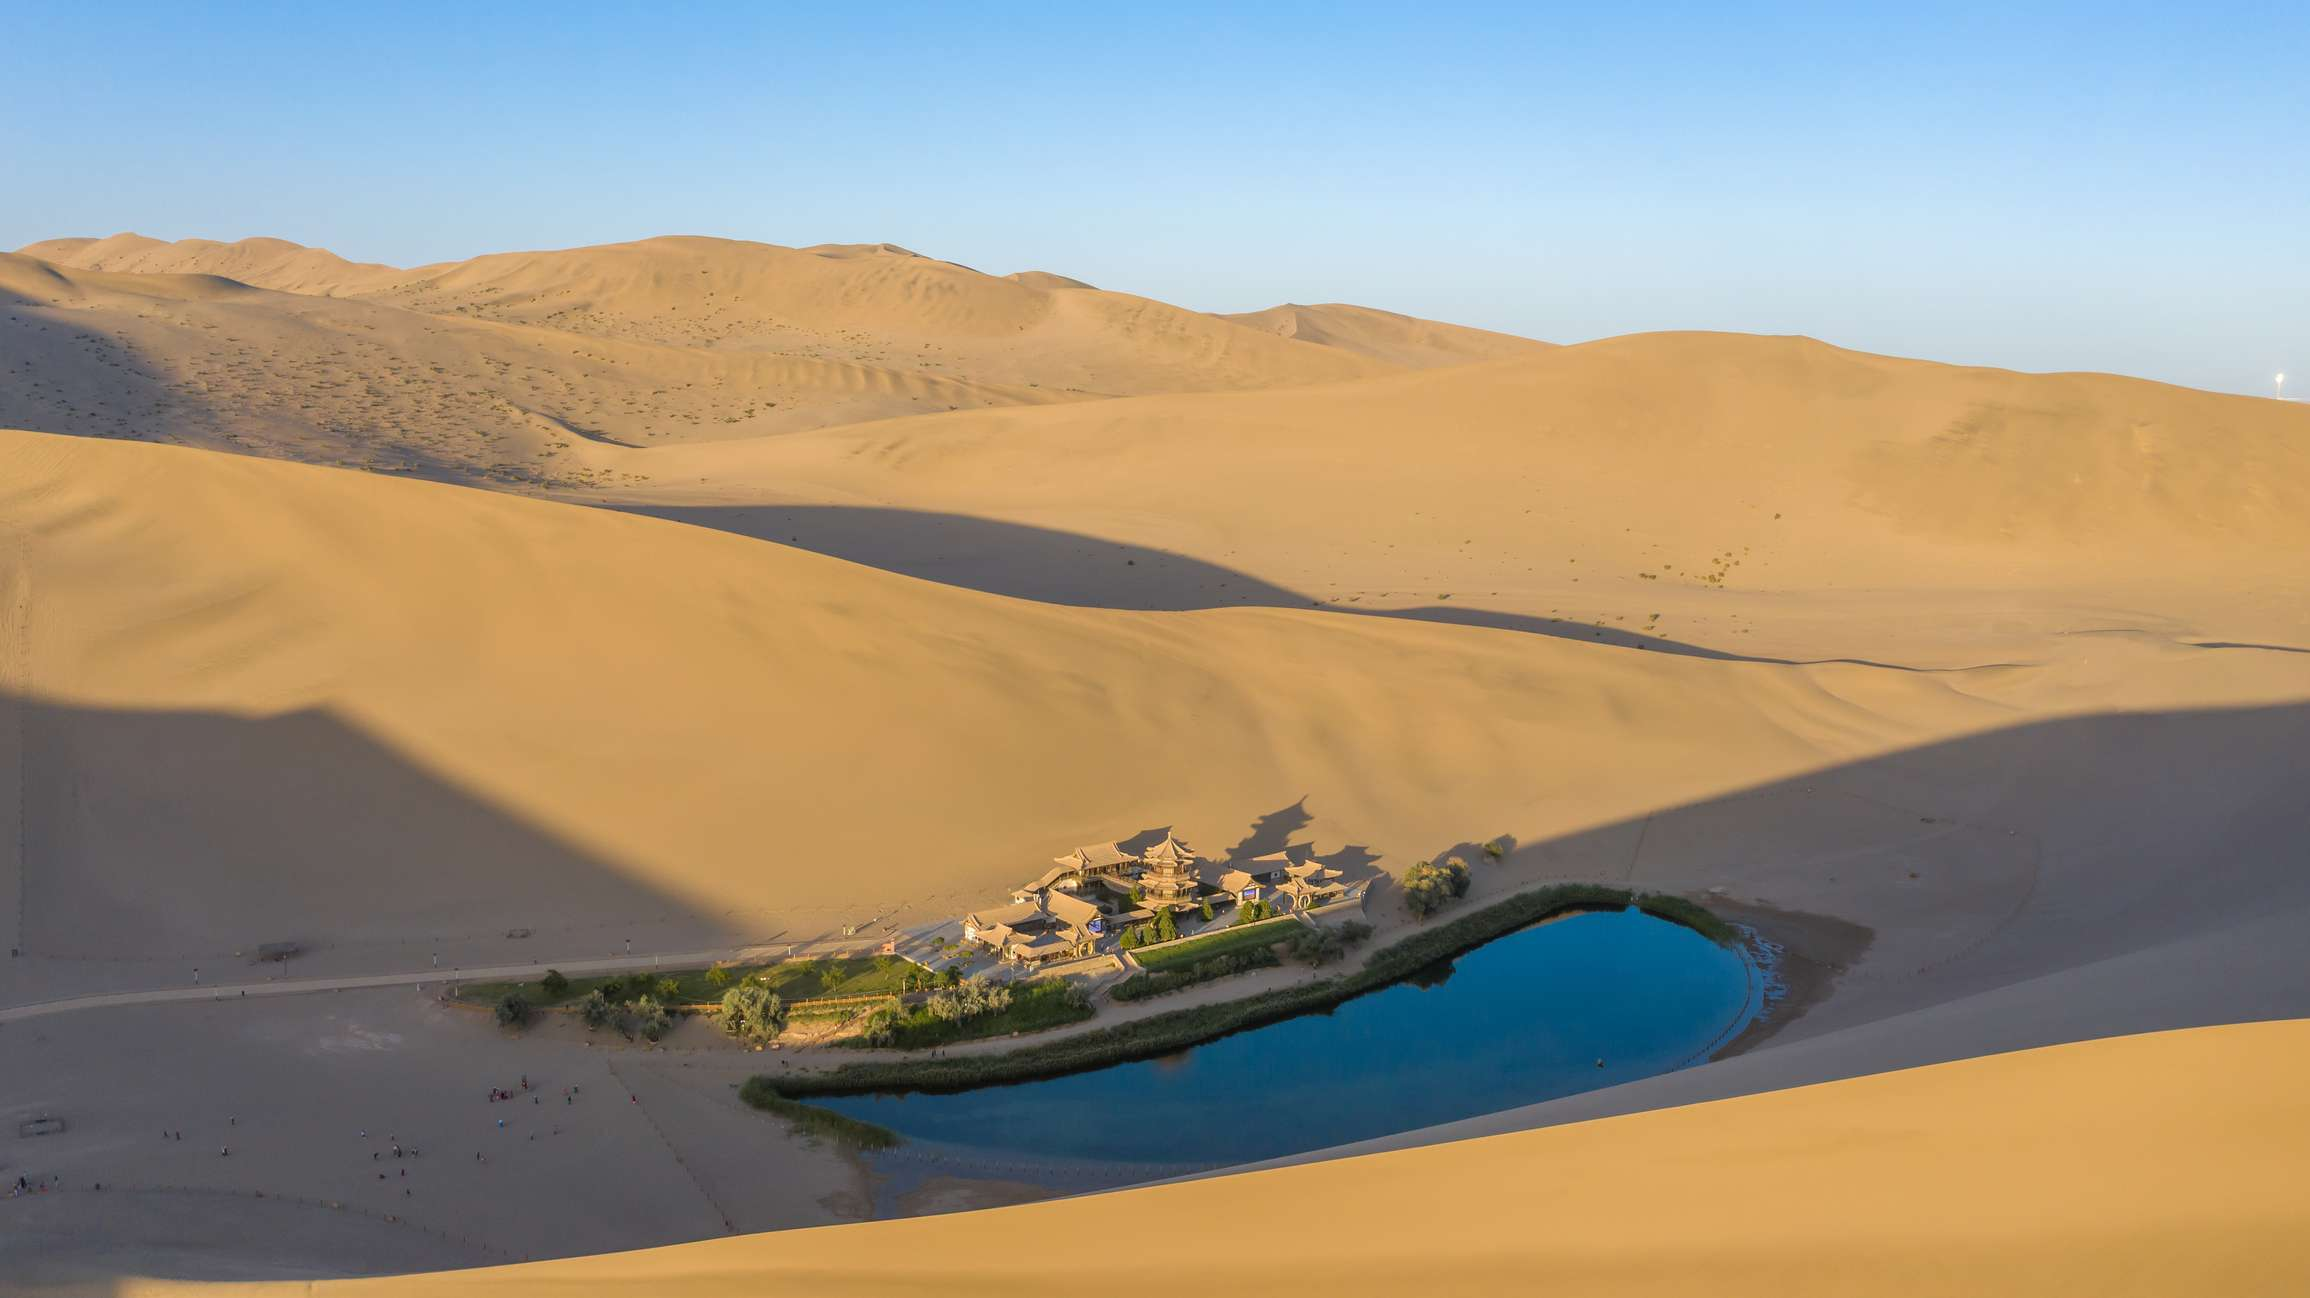 Crescent Lake, a small crescent-shaped lake in China surrounded by sand dunes